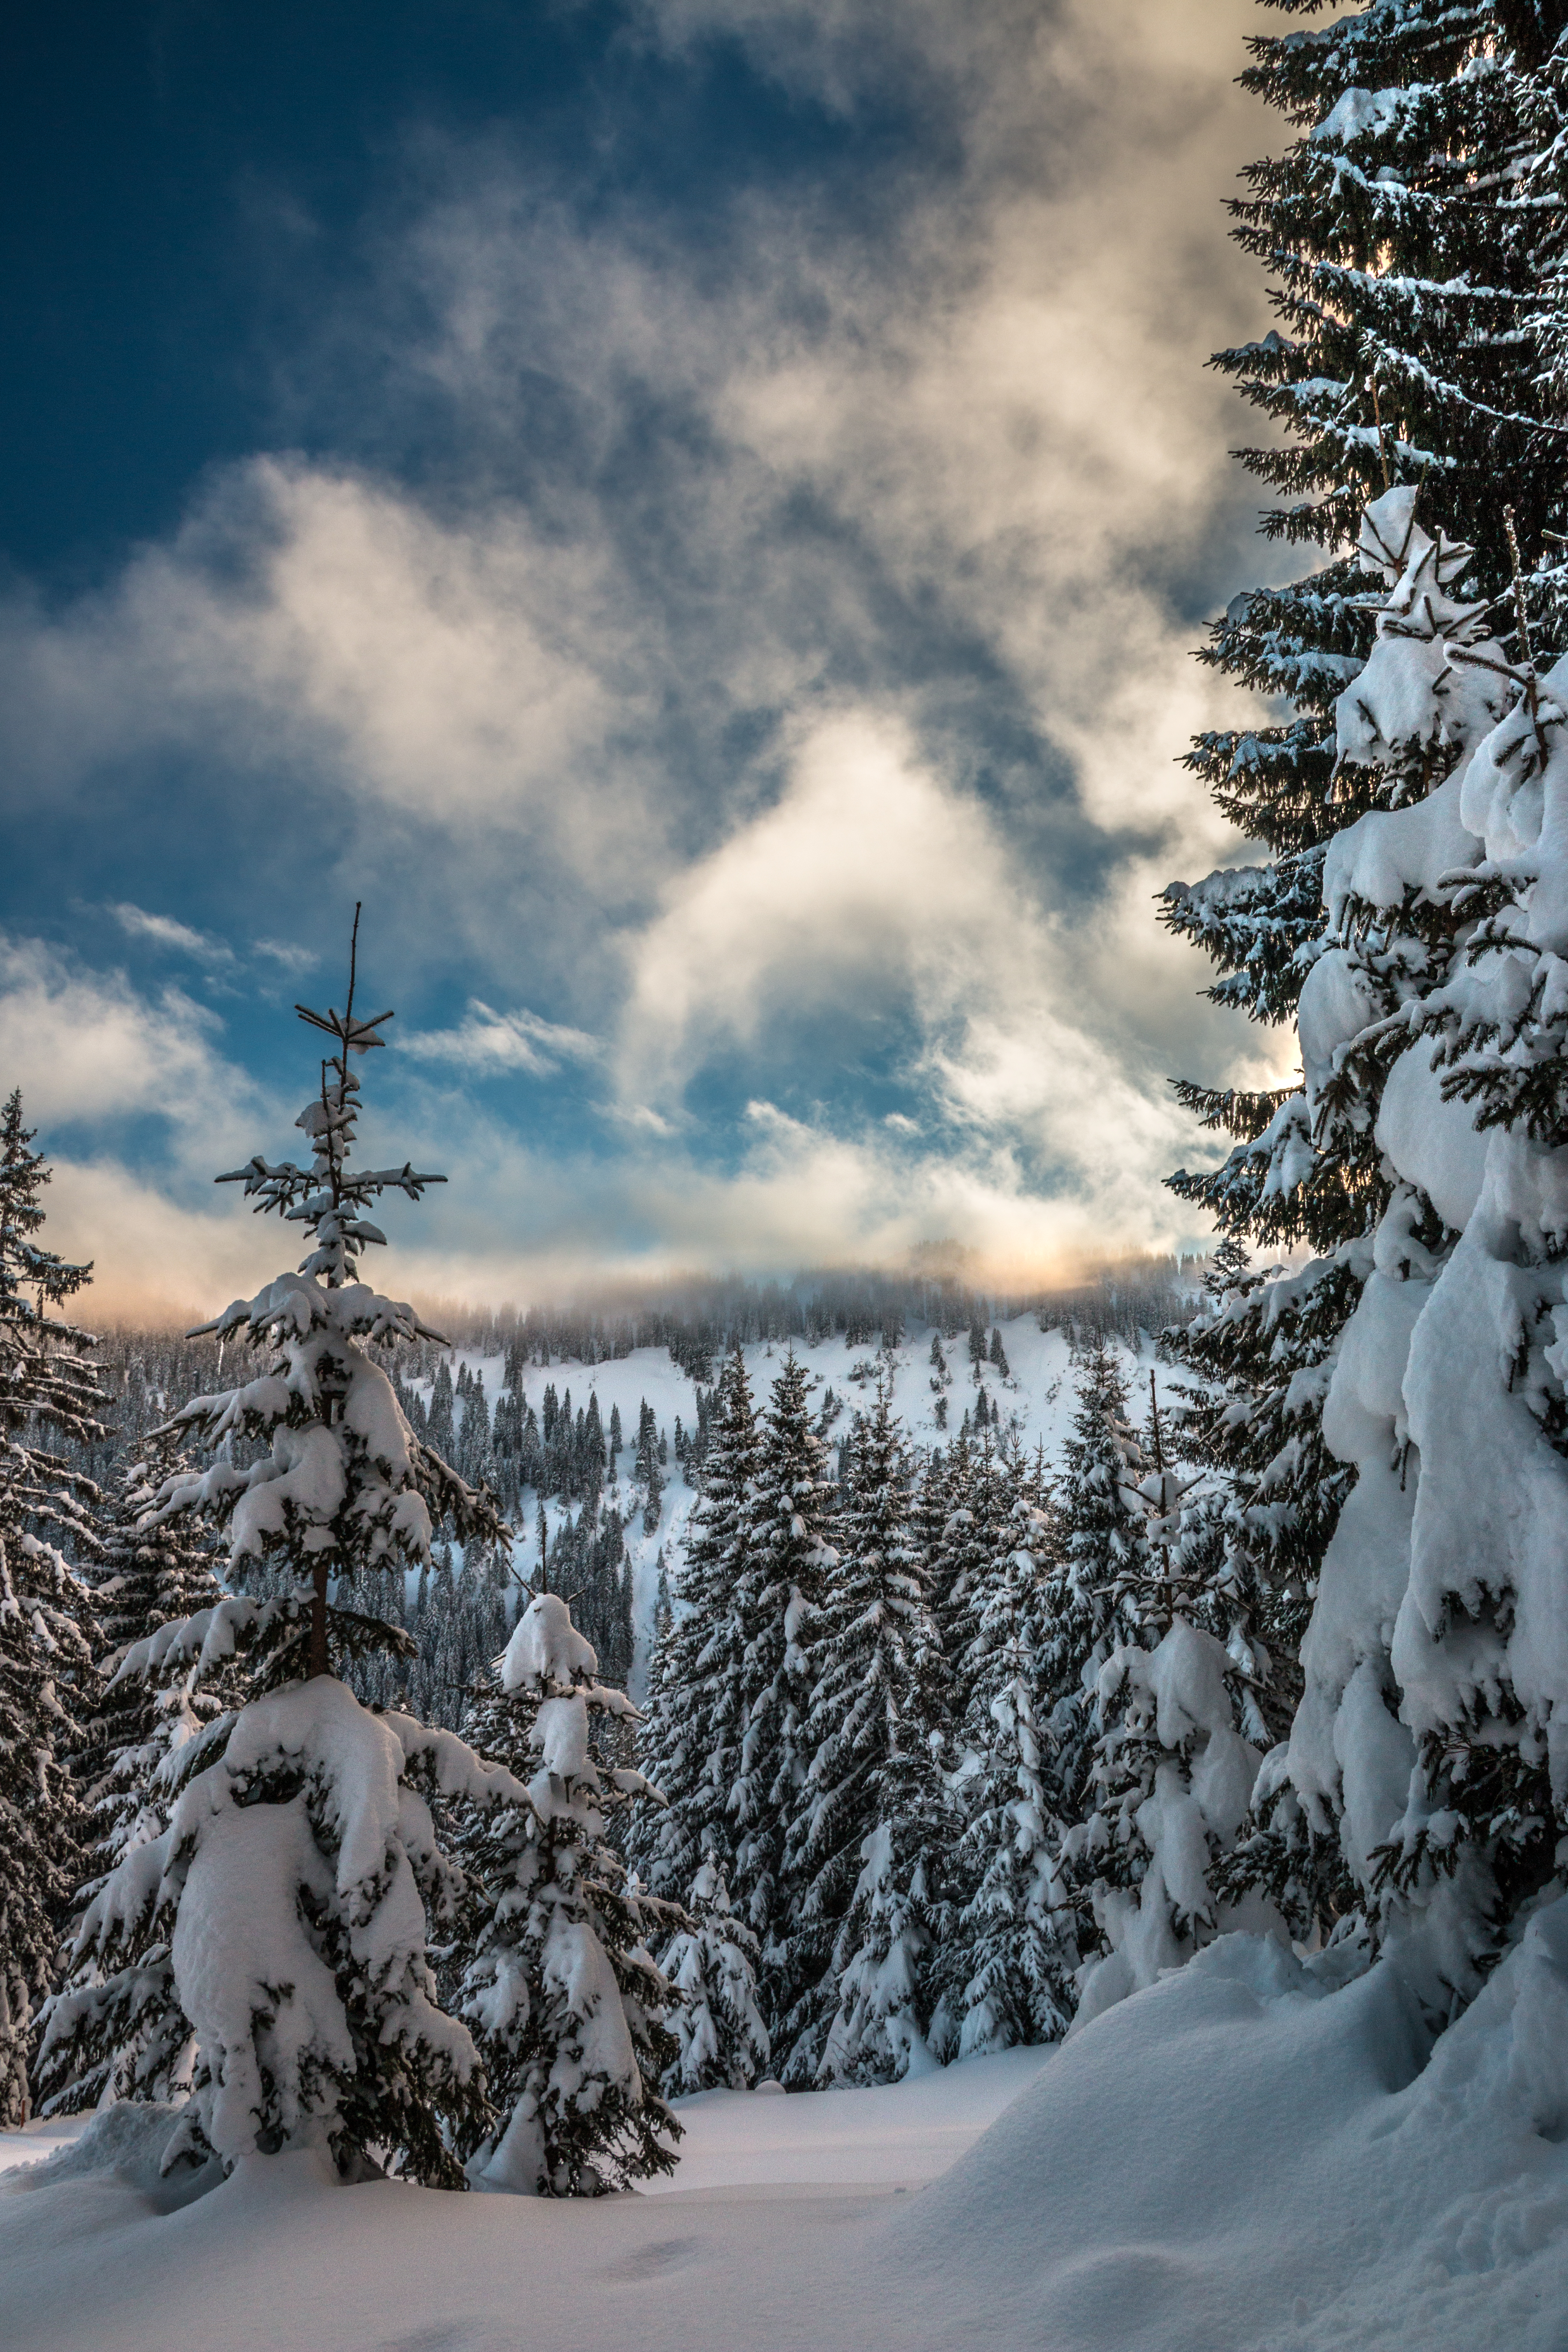 54482 download wallpaper Nature, Snow, Winter, Ate, Branches, Sky, Mountains screensavers and pictures for free